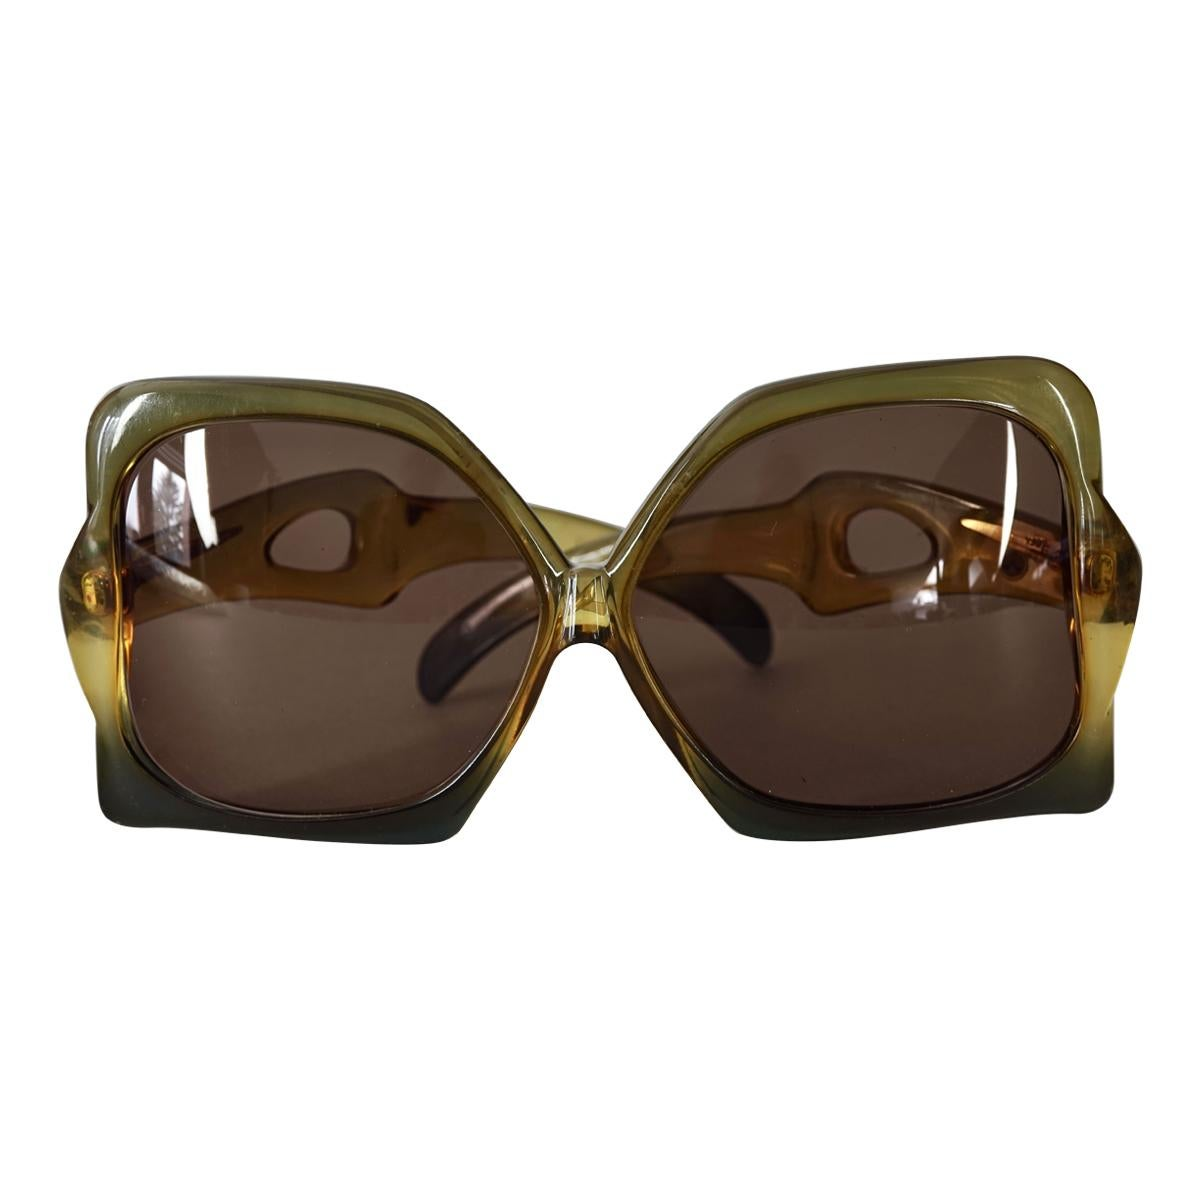 Vintage 1970s CHRISTIAN DIOR Oversized Butterfly Space Age Sunglasses